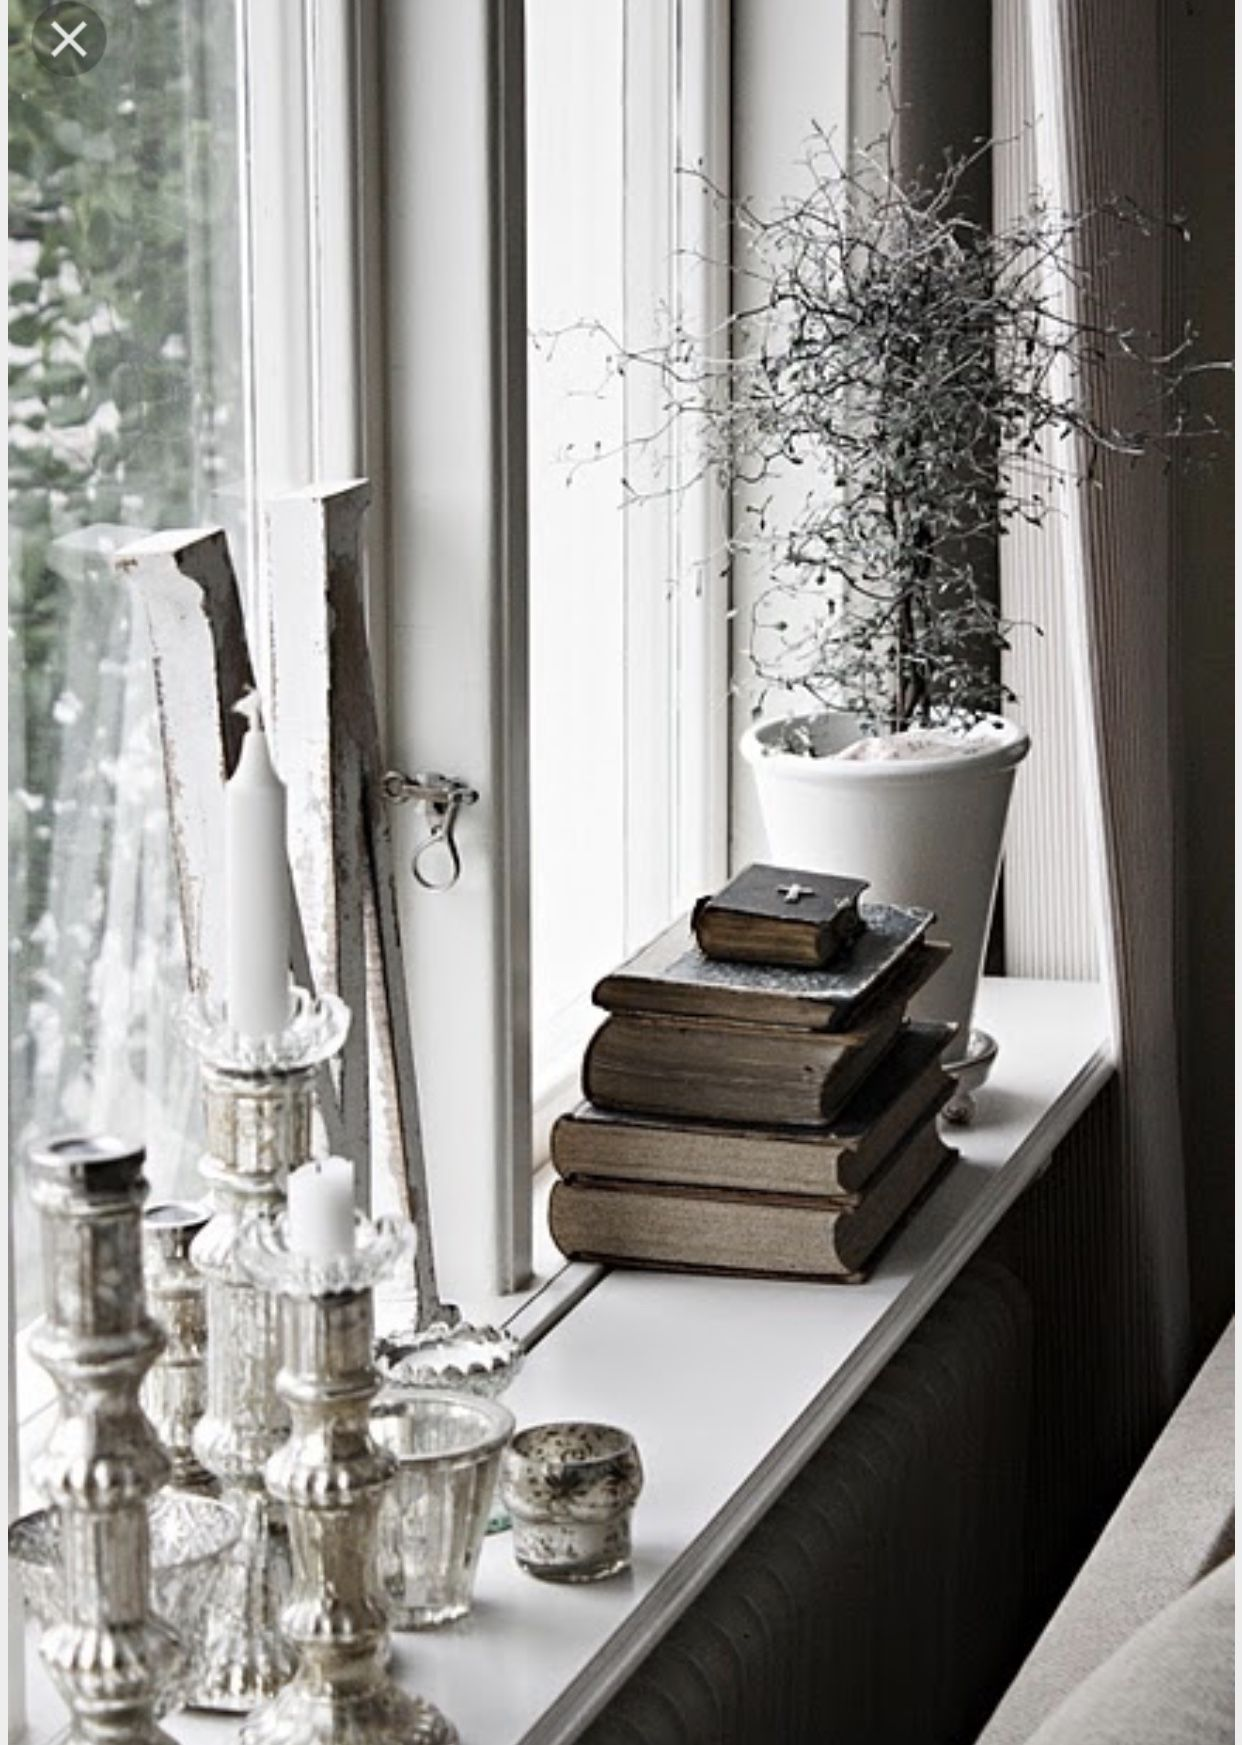 Fensterbank  Chic living room decor, Window ledge decor, Window ledge